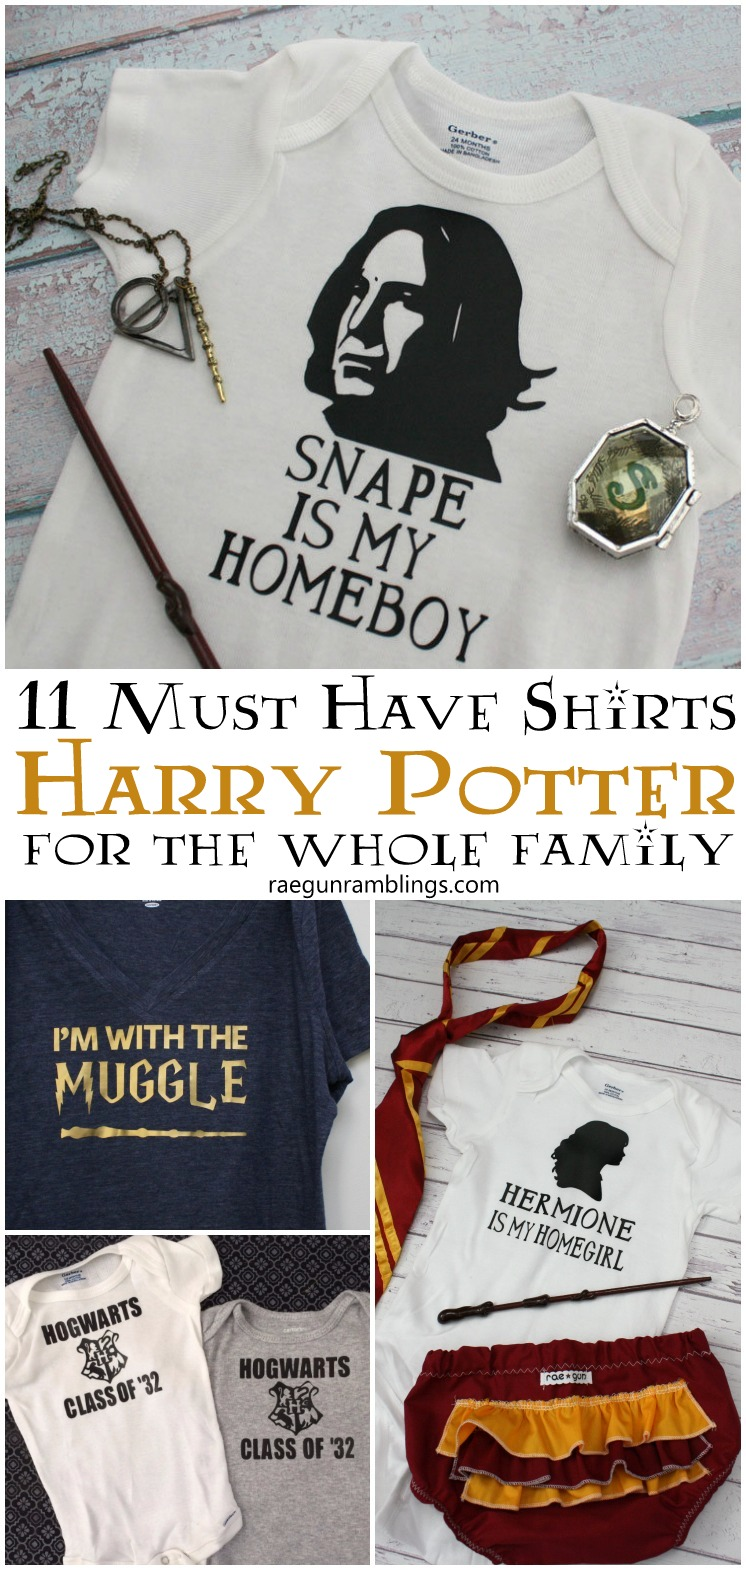 So many great shirts for Harry Potter fans. Adult and baby shirts great for gifts.